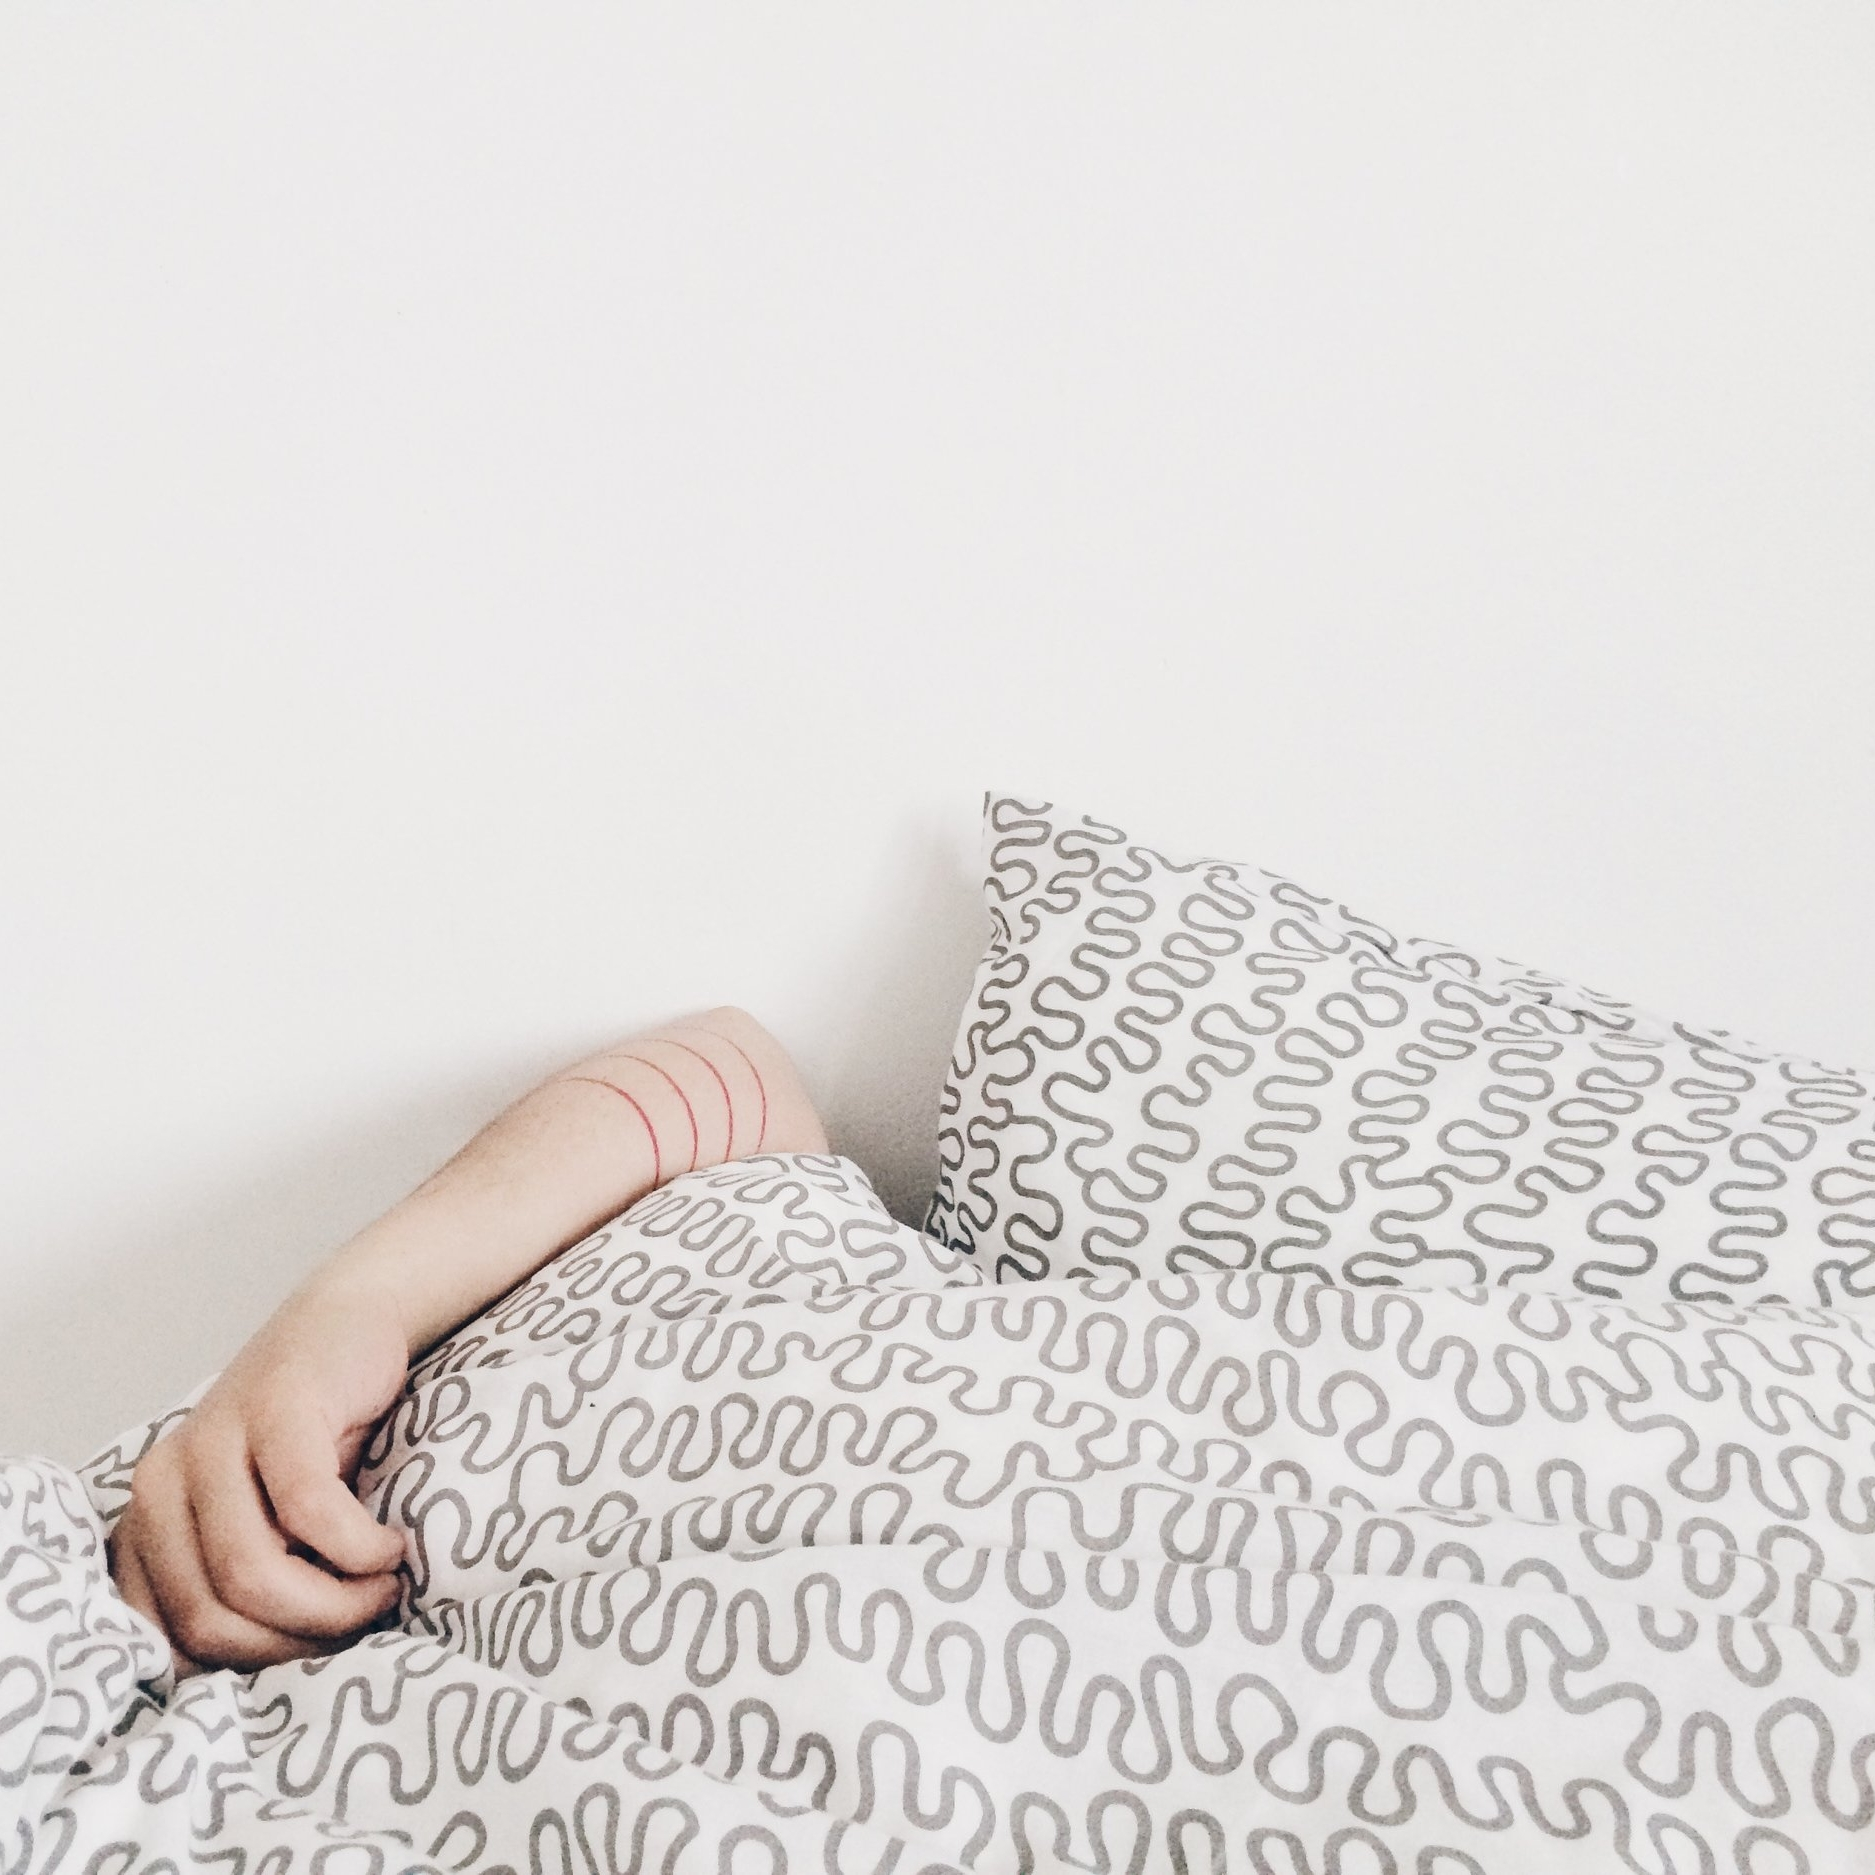 Getting a good nights sleep can be a challenge try and avoid bright screens such as your phone 1-2 hours before bed.